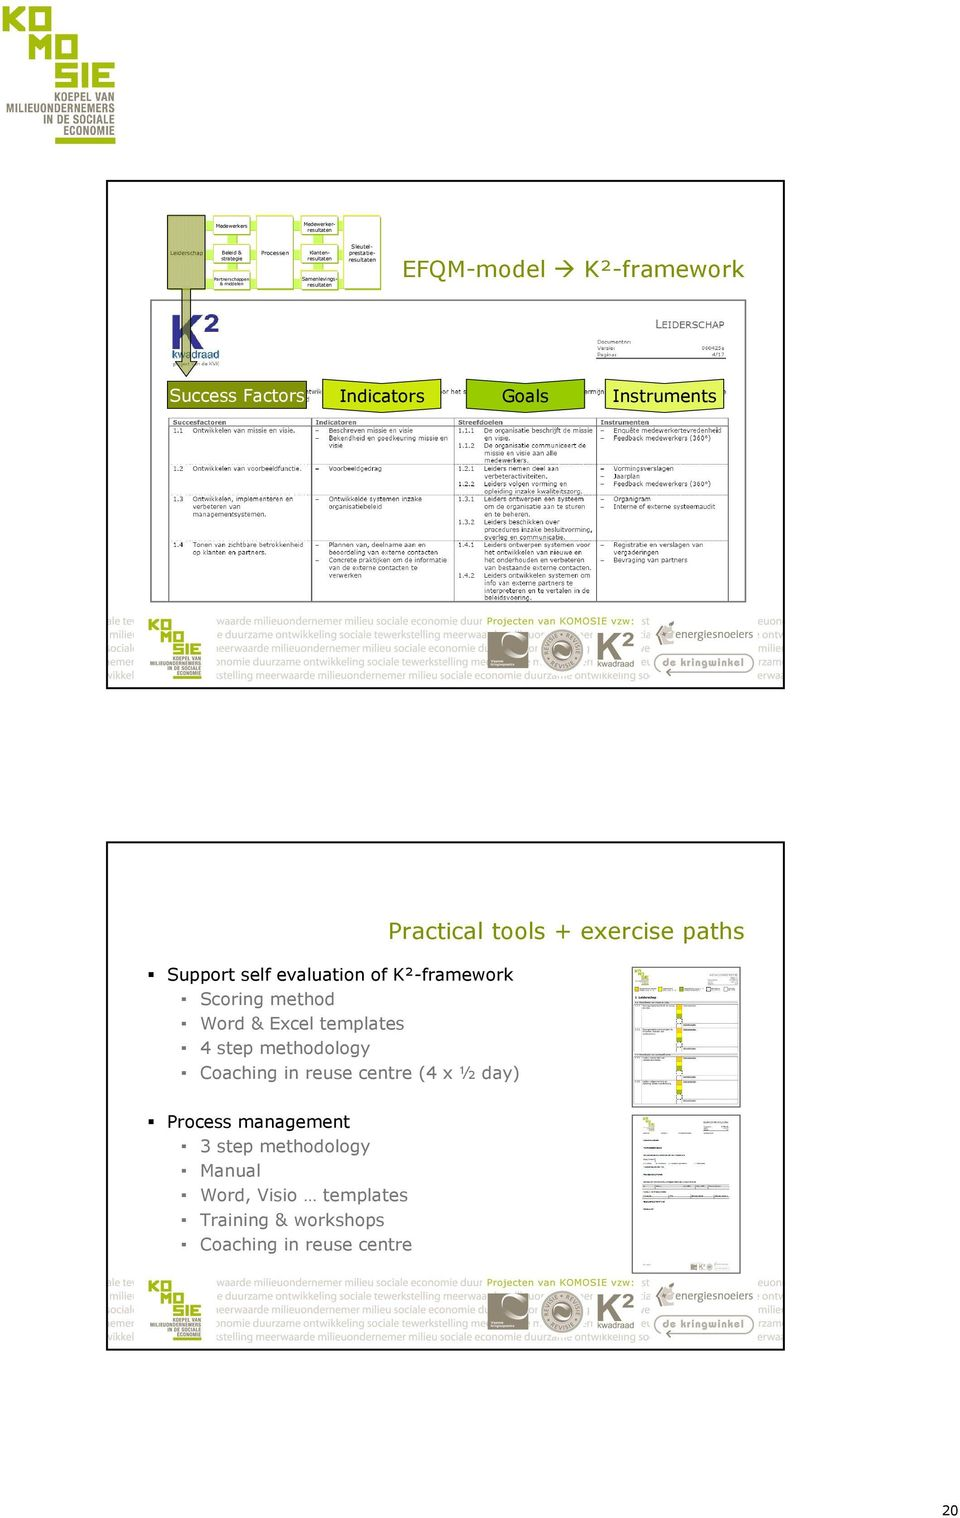 self evaluation of K²-framework Scoring method Word & Excel templates 4 step methodology Coaching in reuse centre (4 x ½ day)